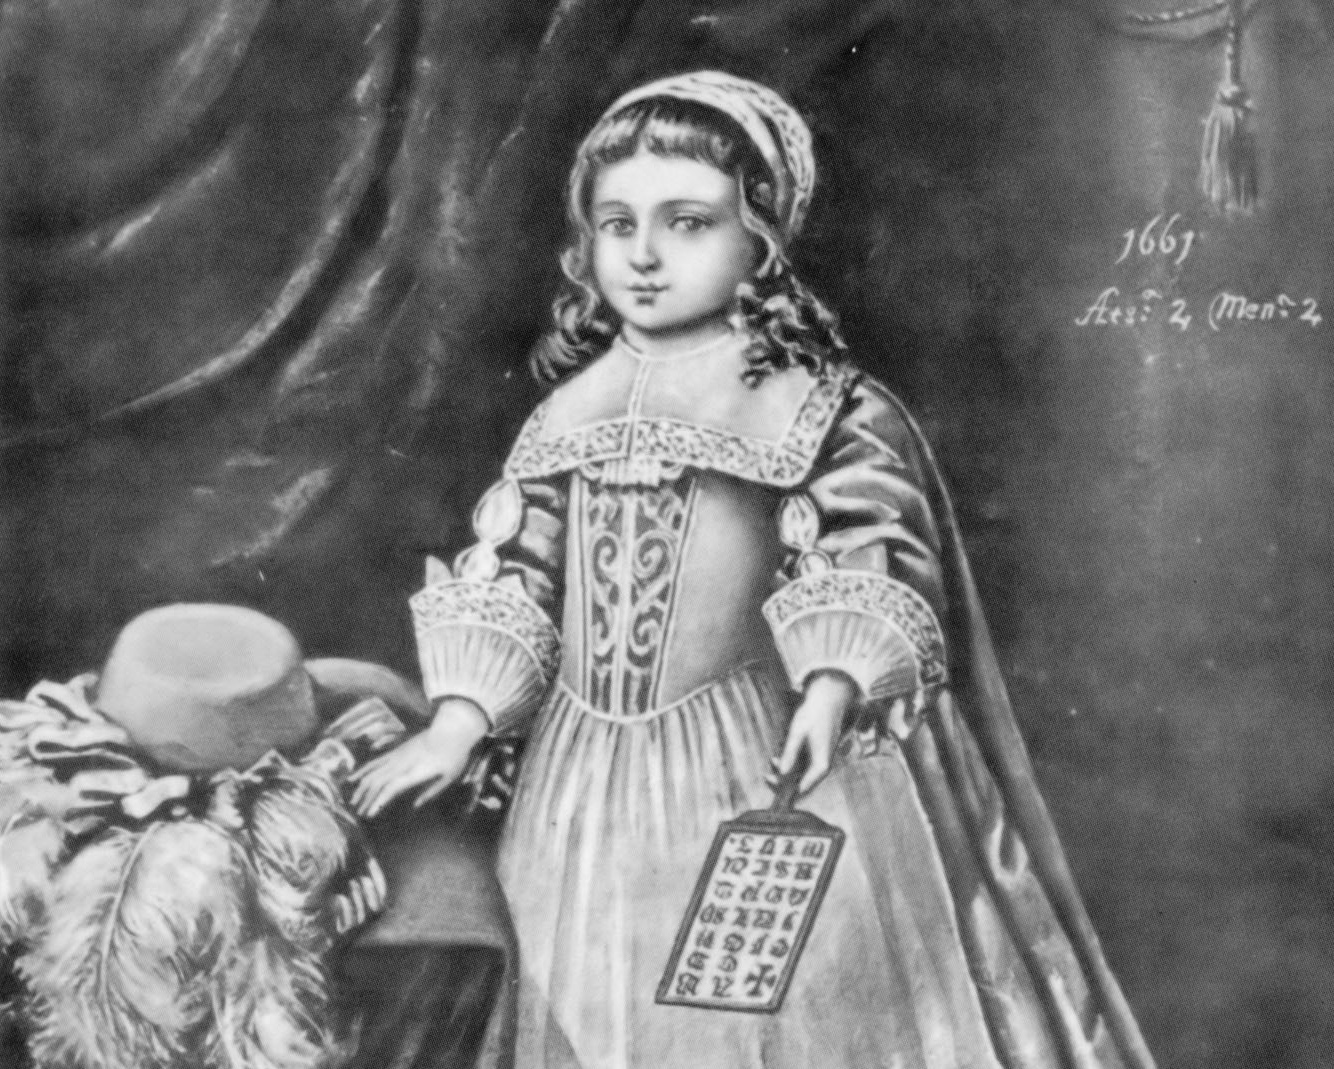 Miss Champion holding a hornbook, 1661. From Tuer's  History of the Horn-Book